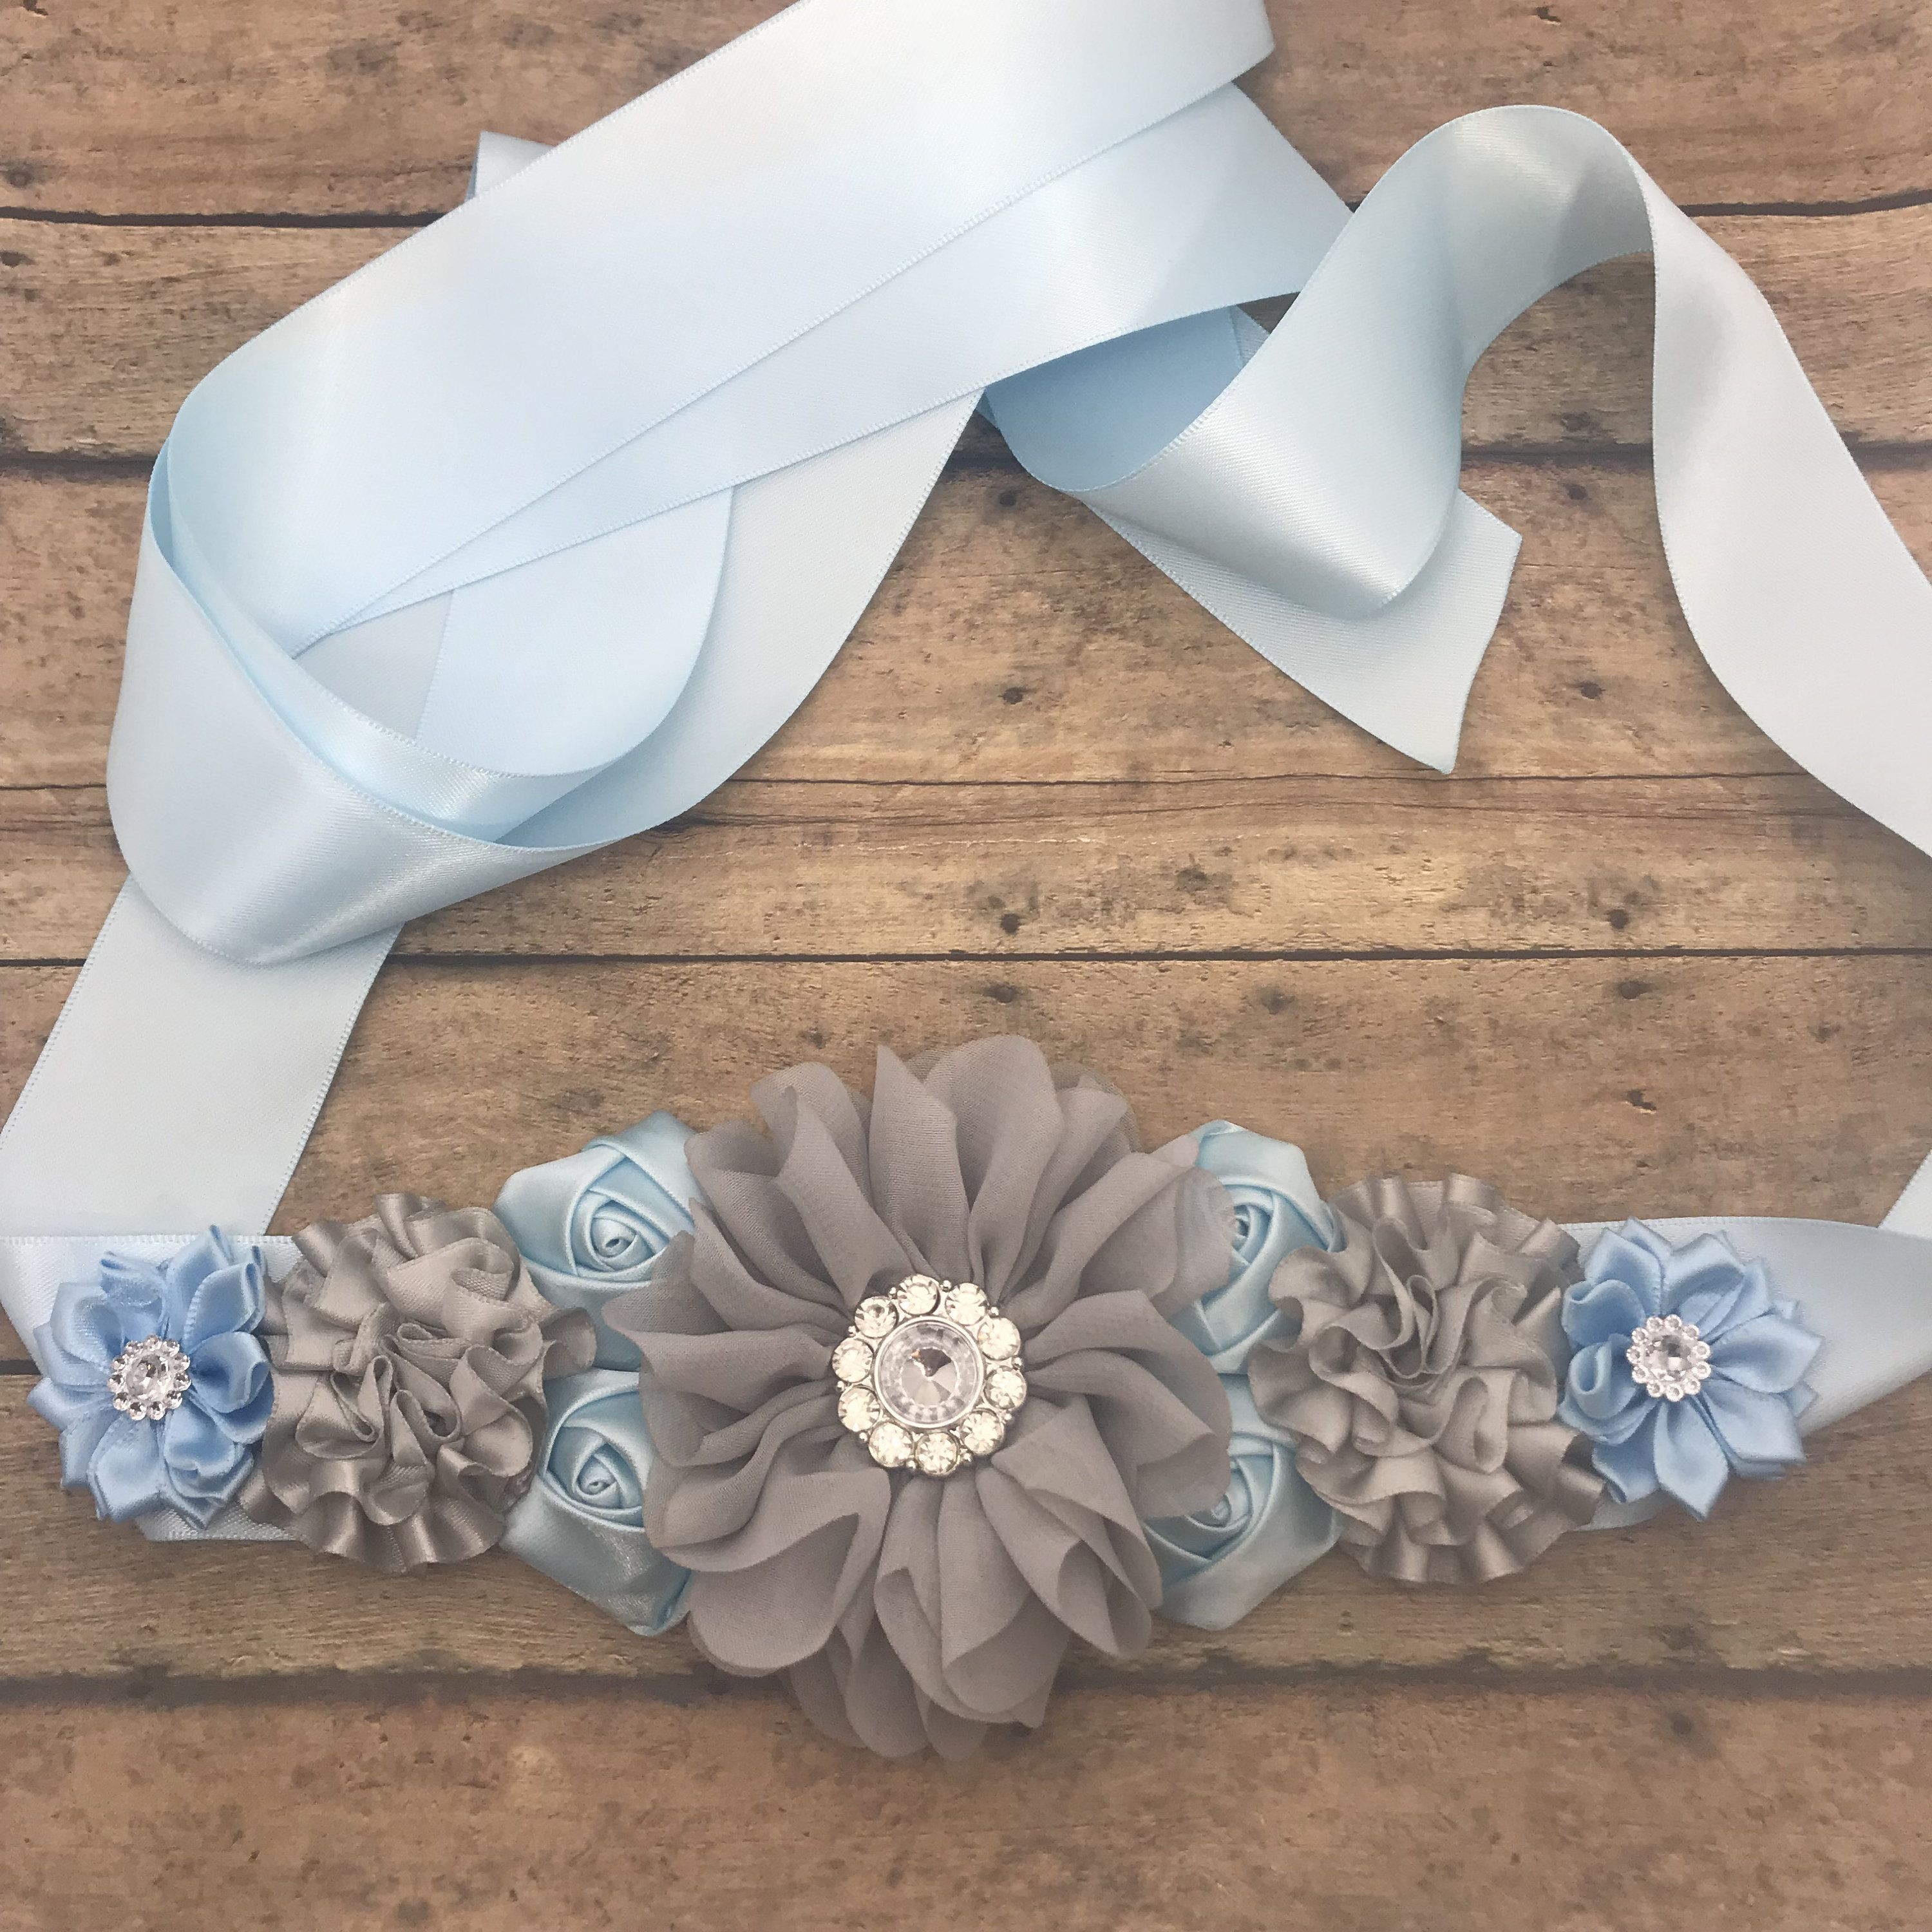 Blue And Grey Sash Maternity Sash Maternity Sash Boy Maternity Belt Belly Sash Ready To Ship Baby Shower Sash Photo Prop Baby Shower Sash Baby Shower Sash Boy Baby Shower Corsage